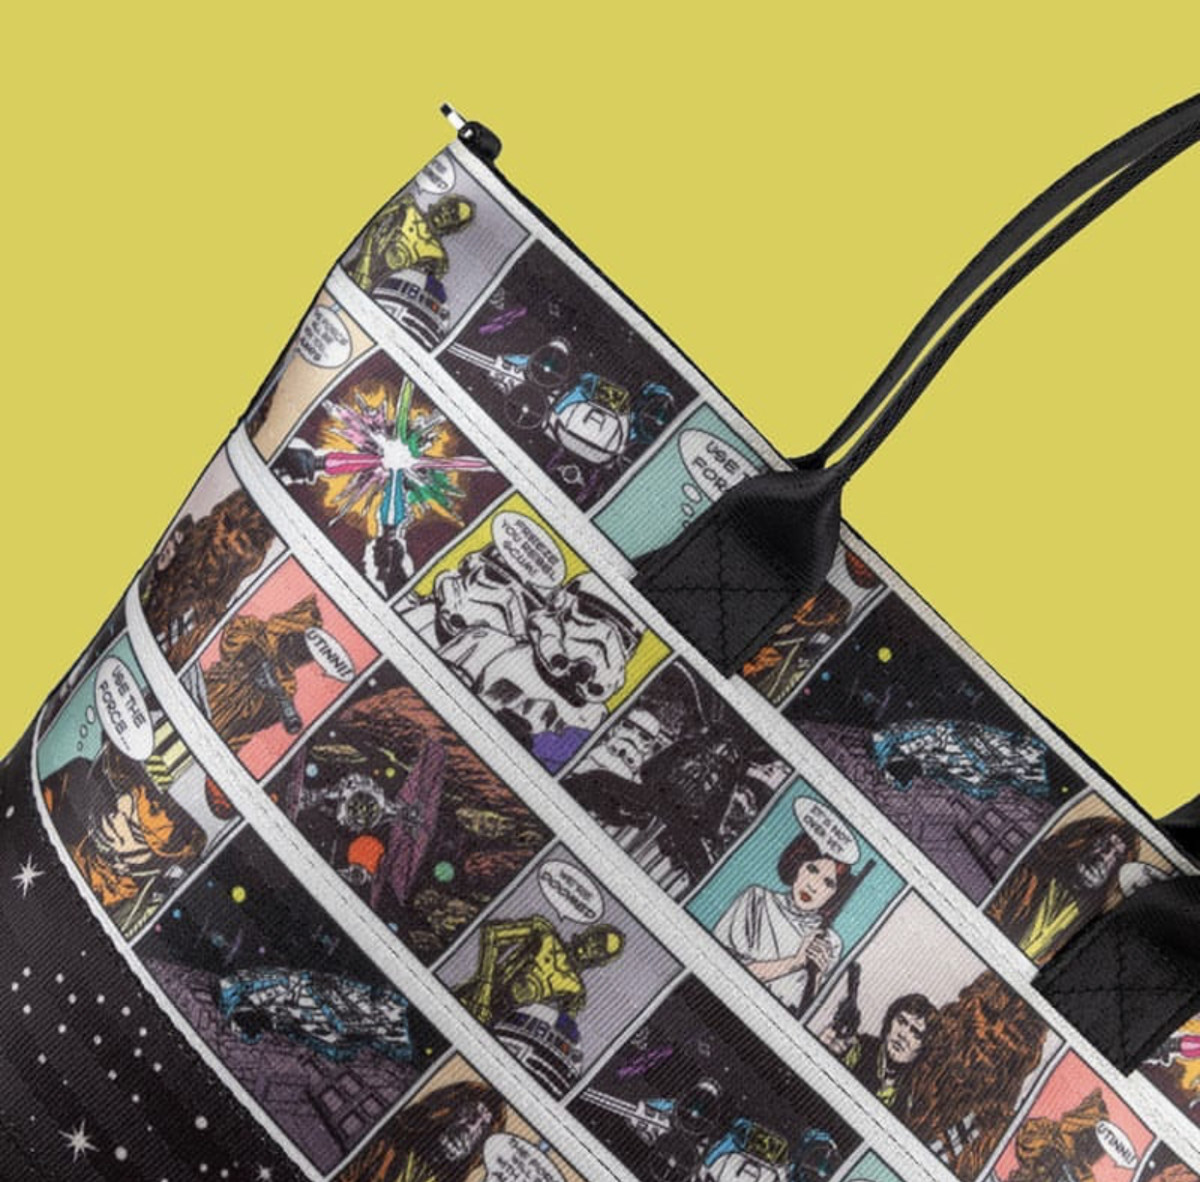 Sneak Peek Of New Harveys Star Wars Bags - They're Out Of This World 44